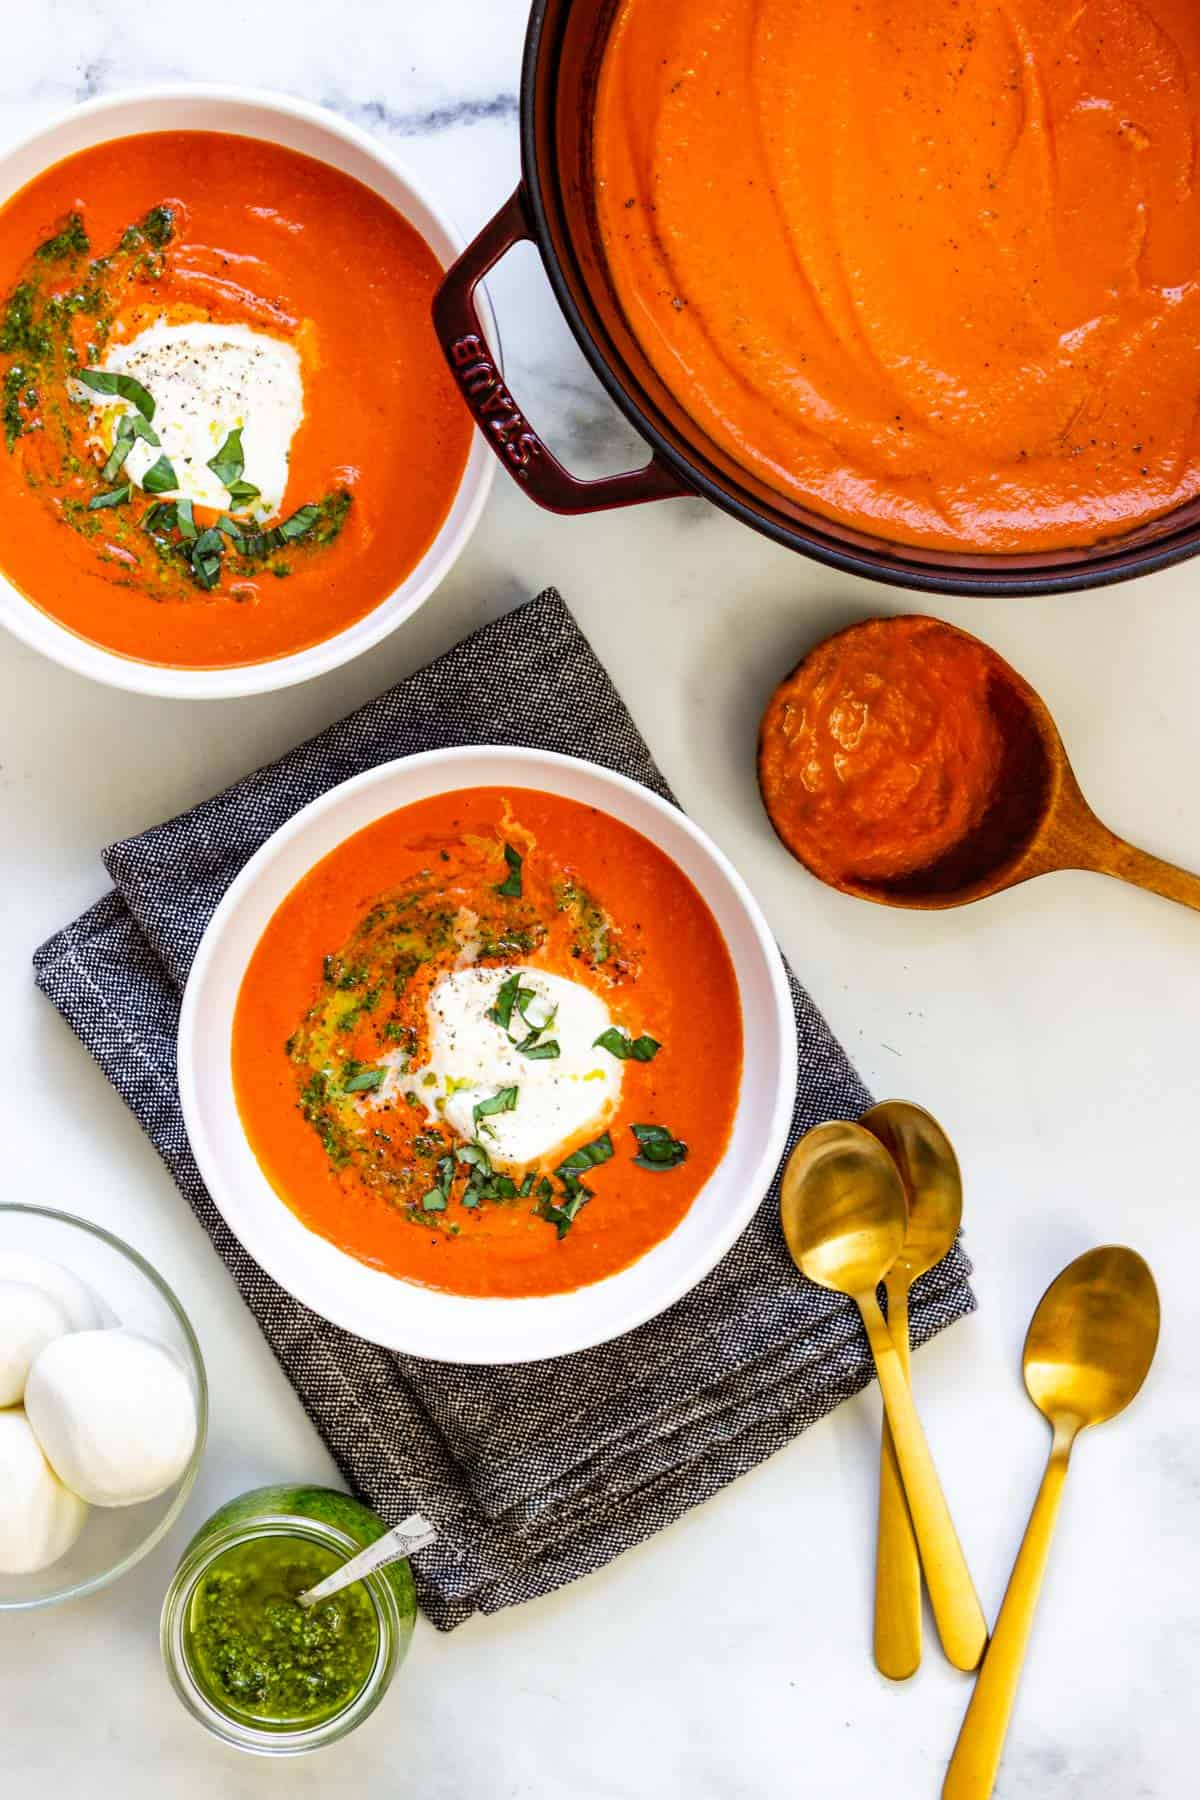 A pot and two bowls of soup, a bowl of burrata, and several gold spoons sit on a counter.